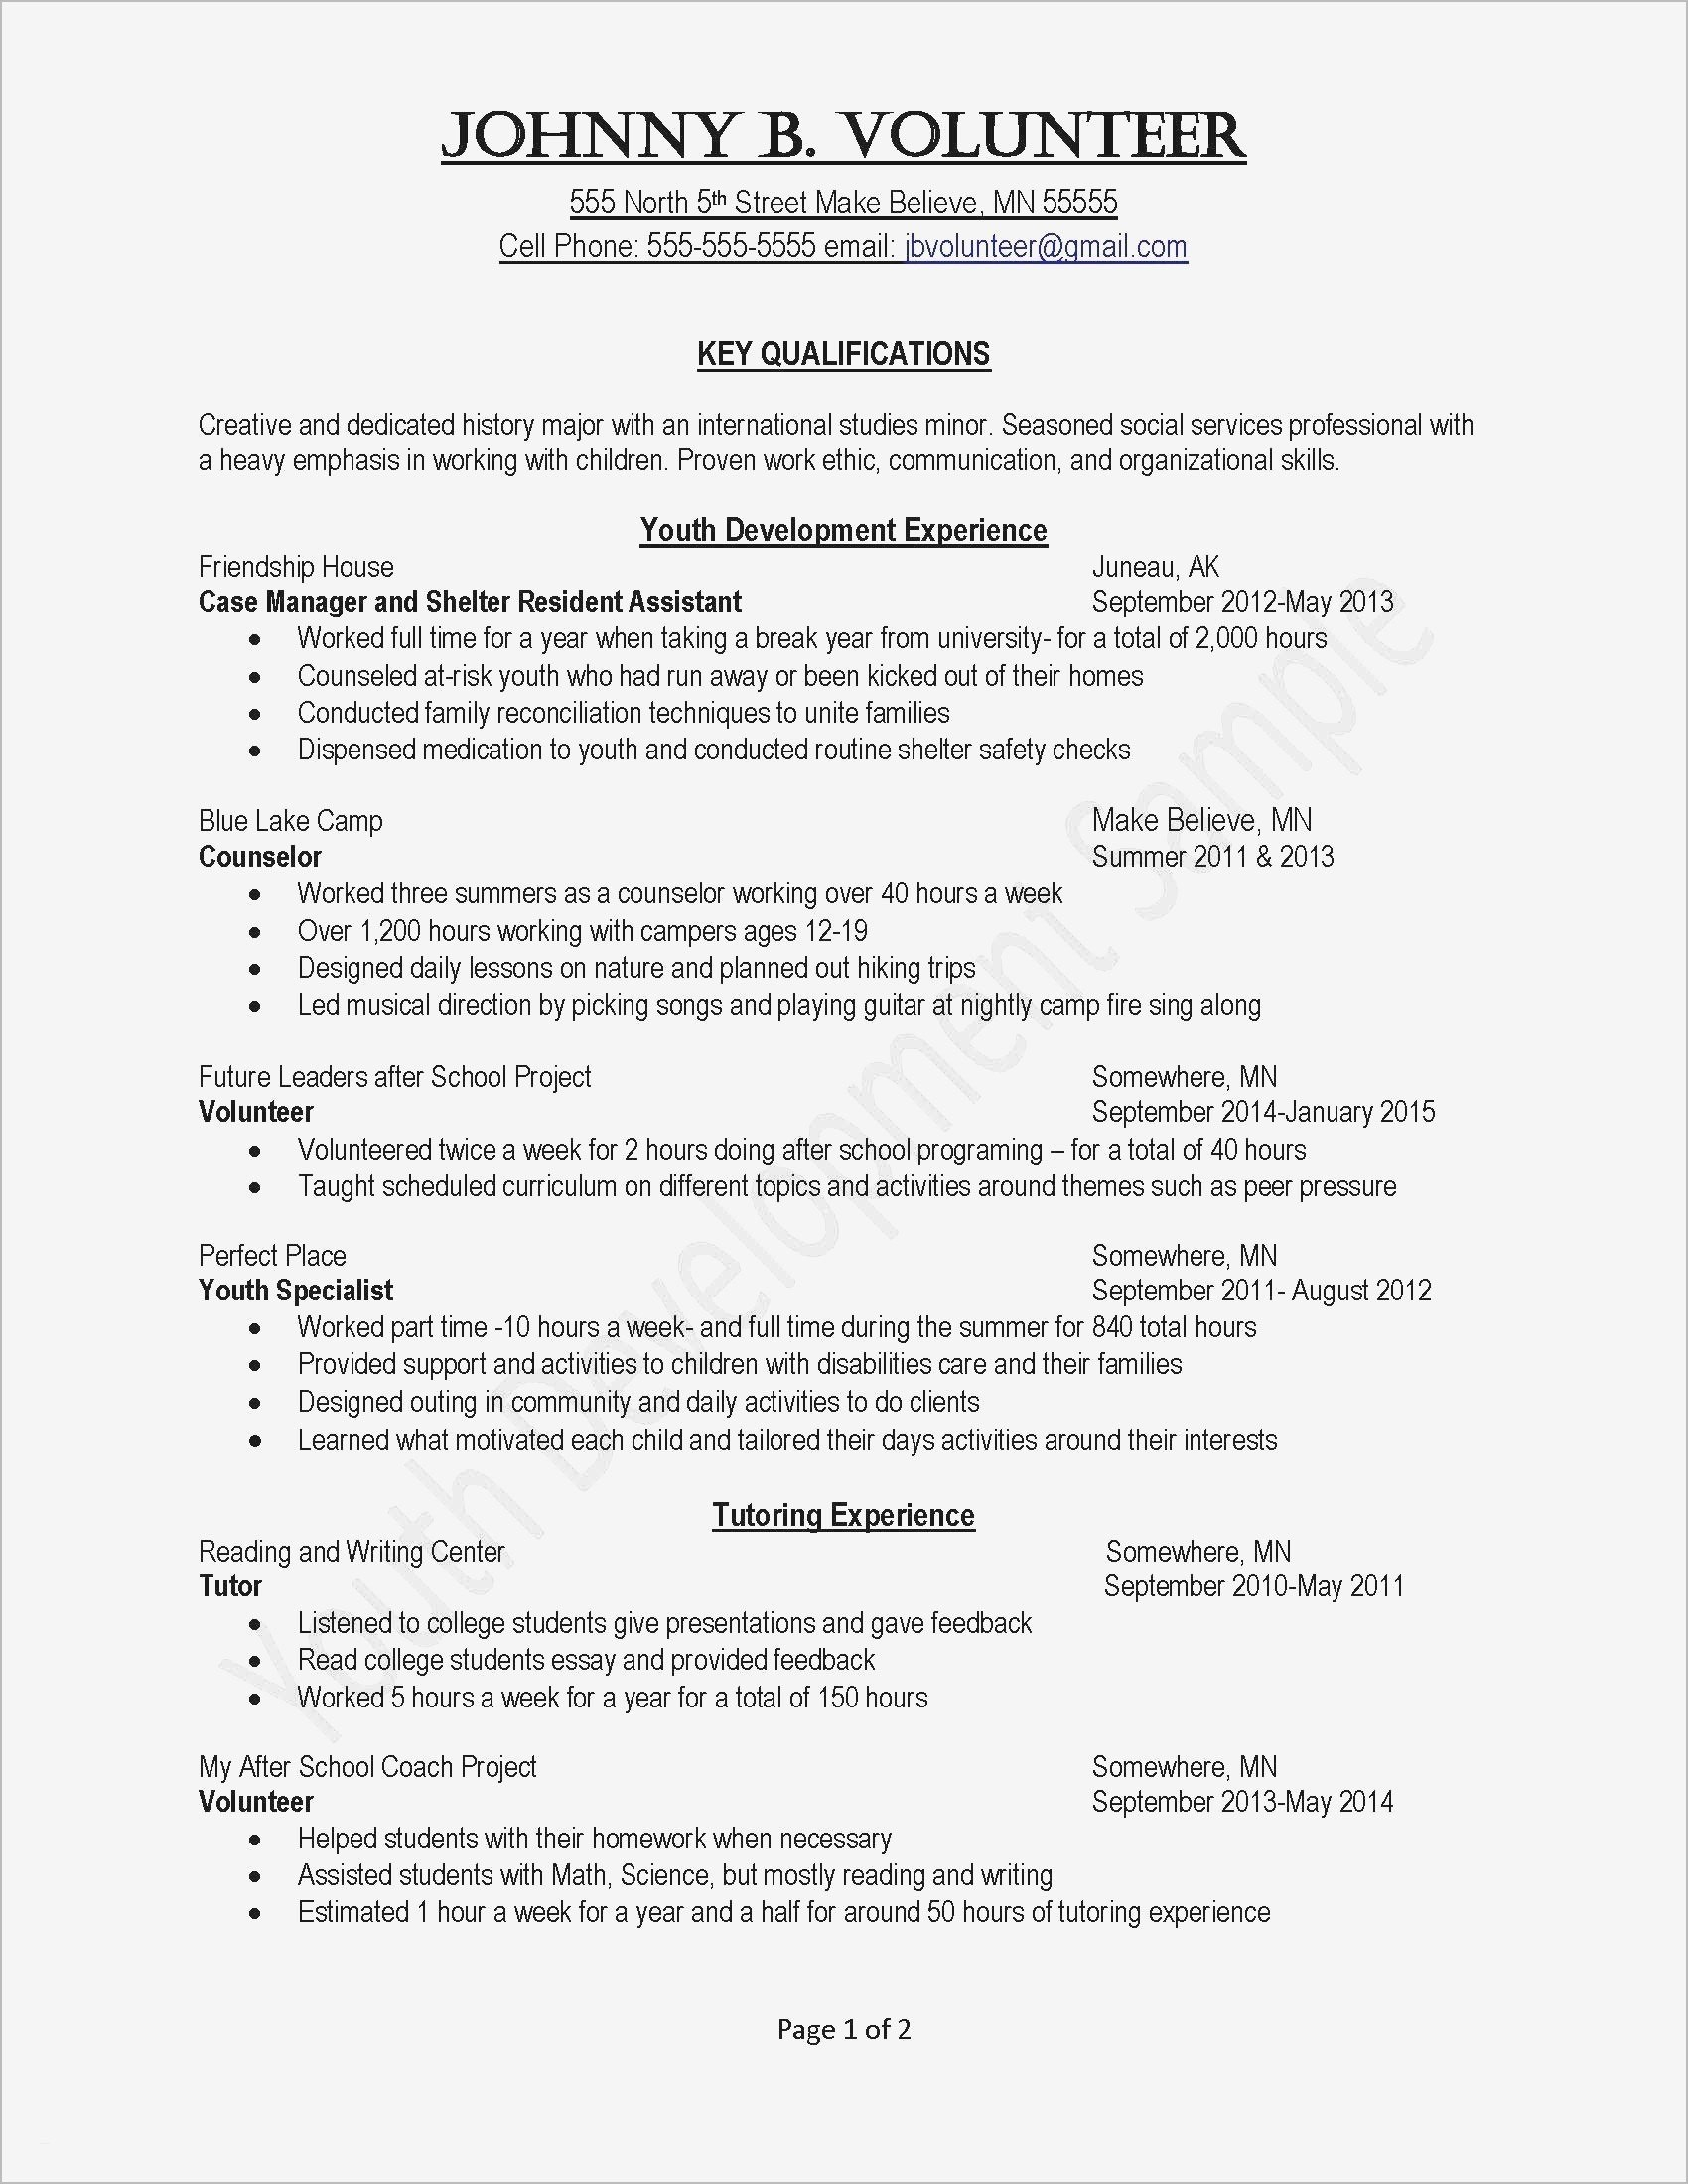 Professional Resume Outline - How to Make A Professional Cover Letter New Cfo Resume Template